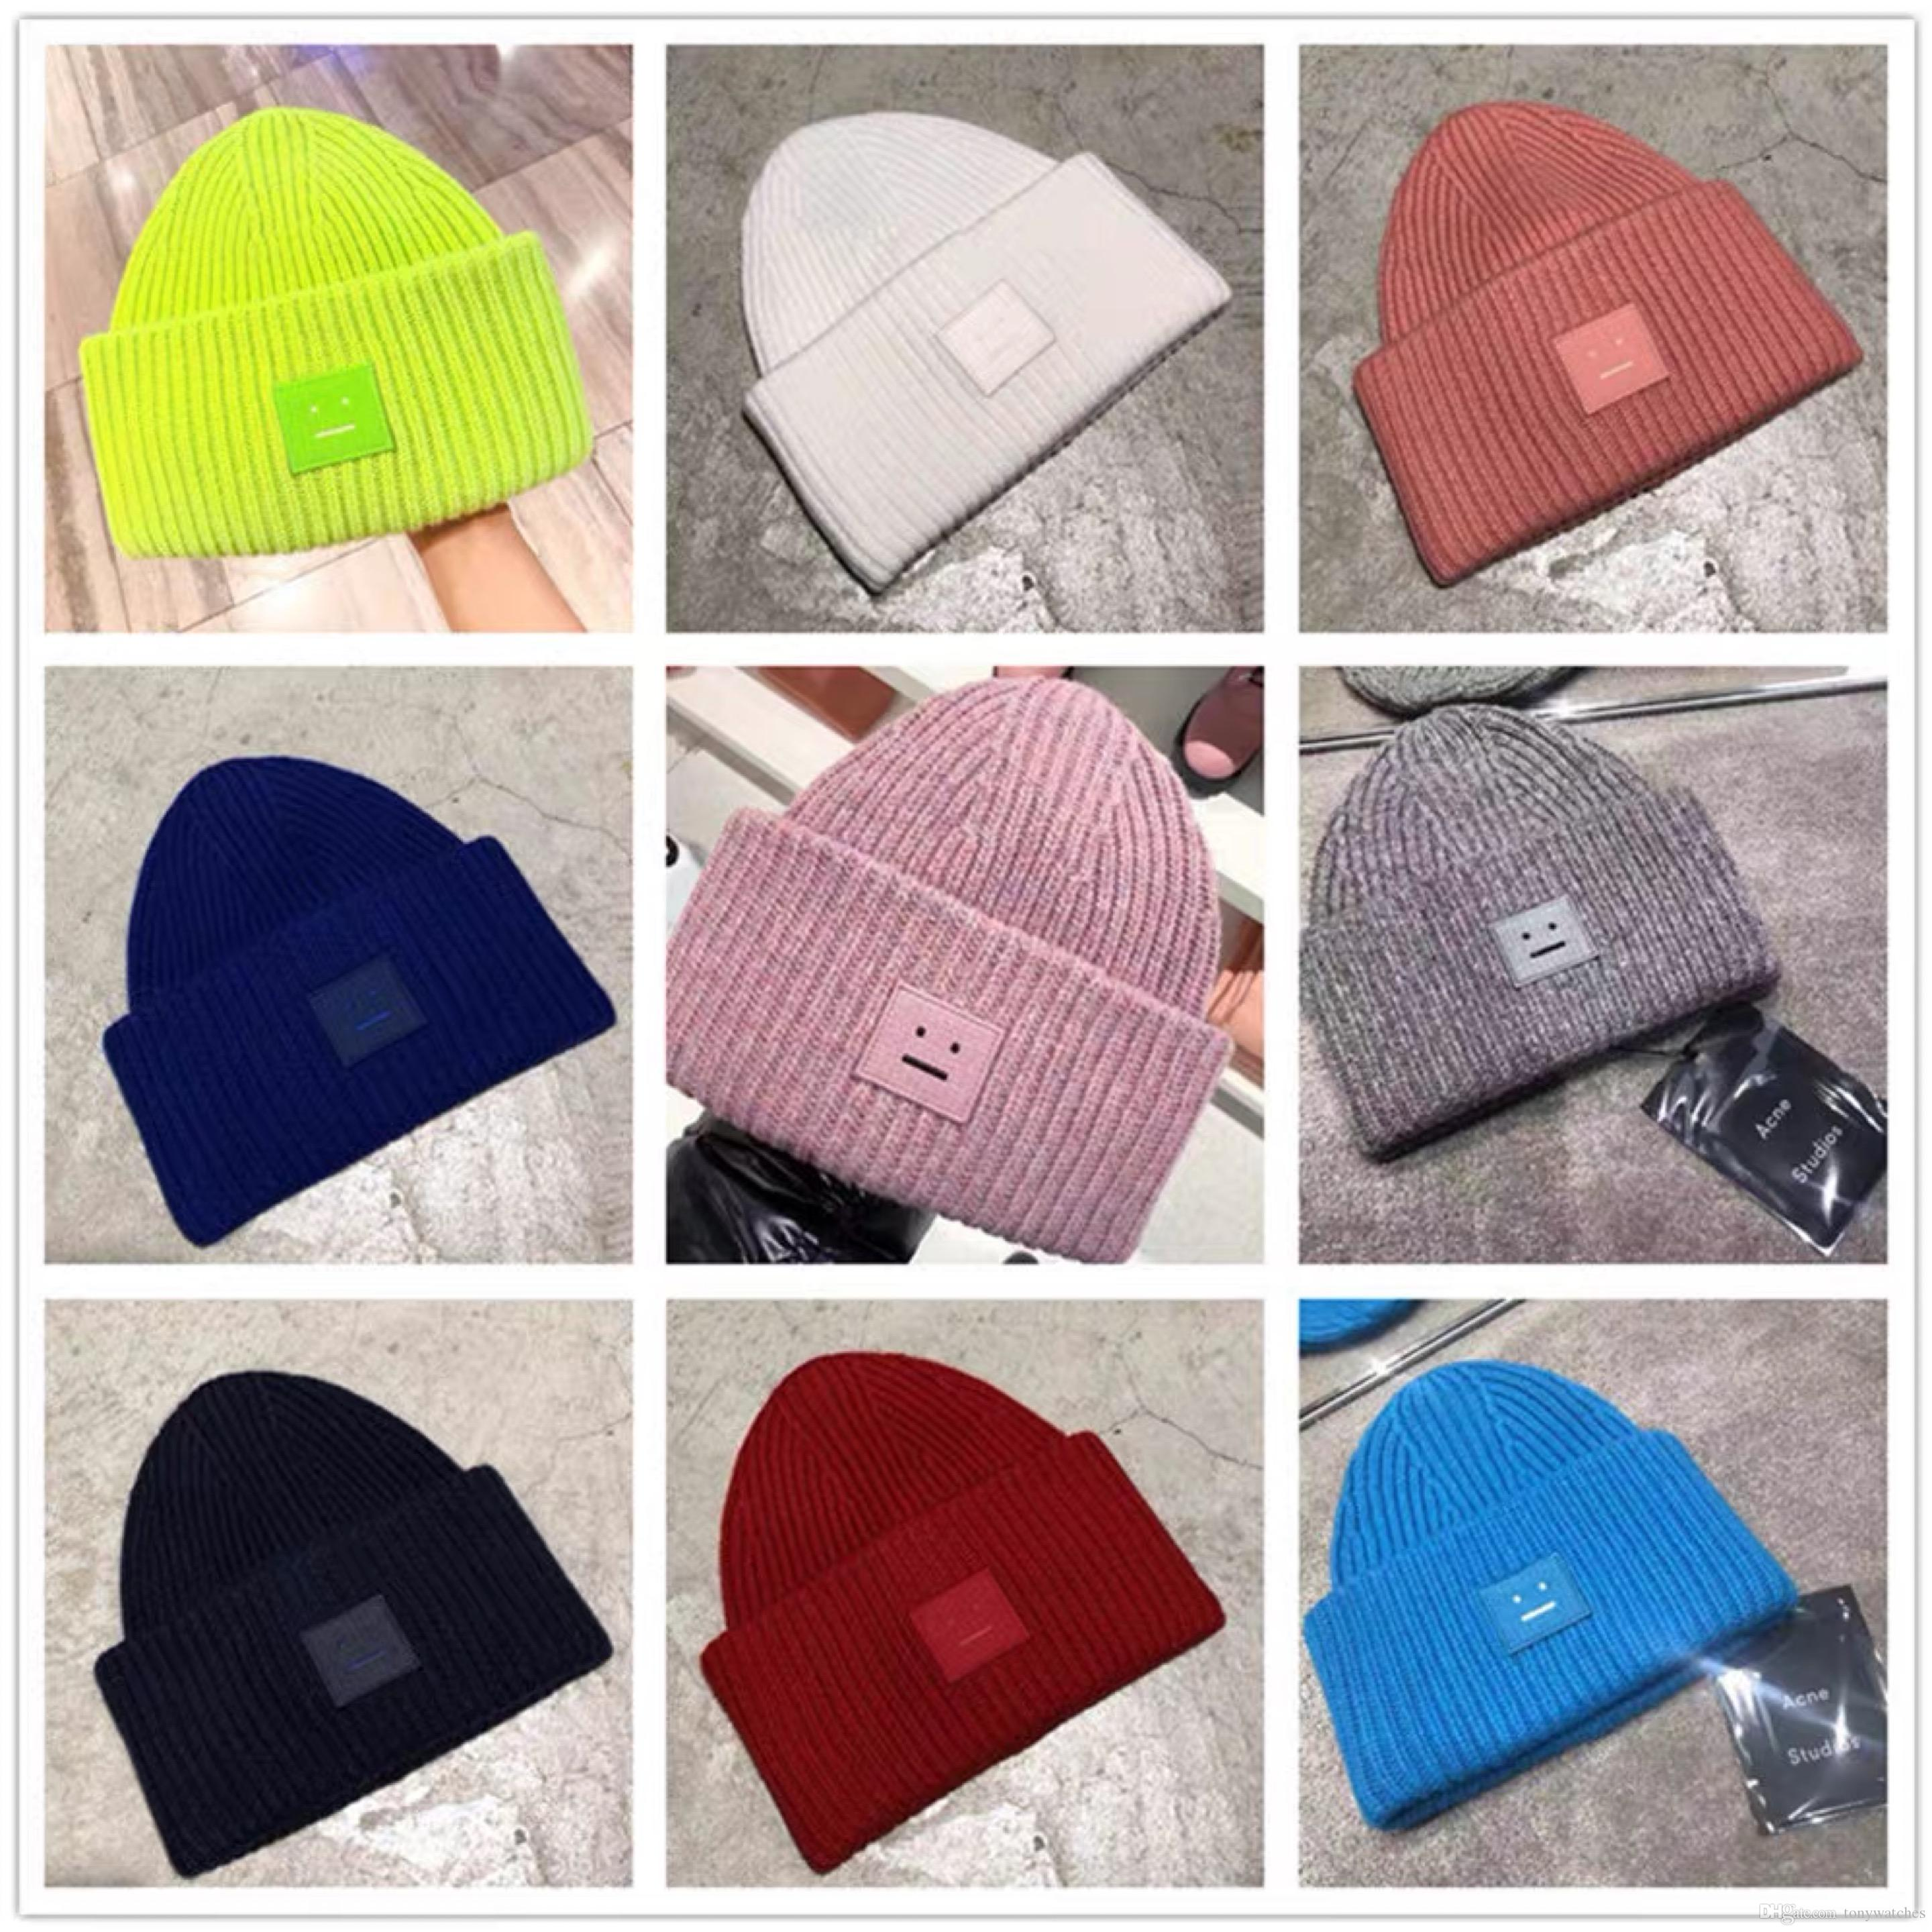 Acne Studios Smiling face Beanie Skull Caps knitted Cashmere Eye Warm Couple Lovers Acne Hats Tide Street Hip-hop Wool Cap Adult Children So